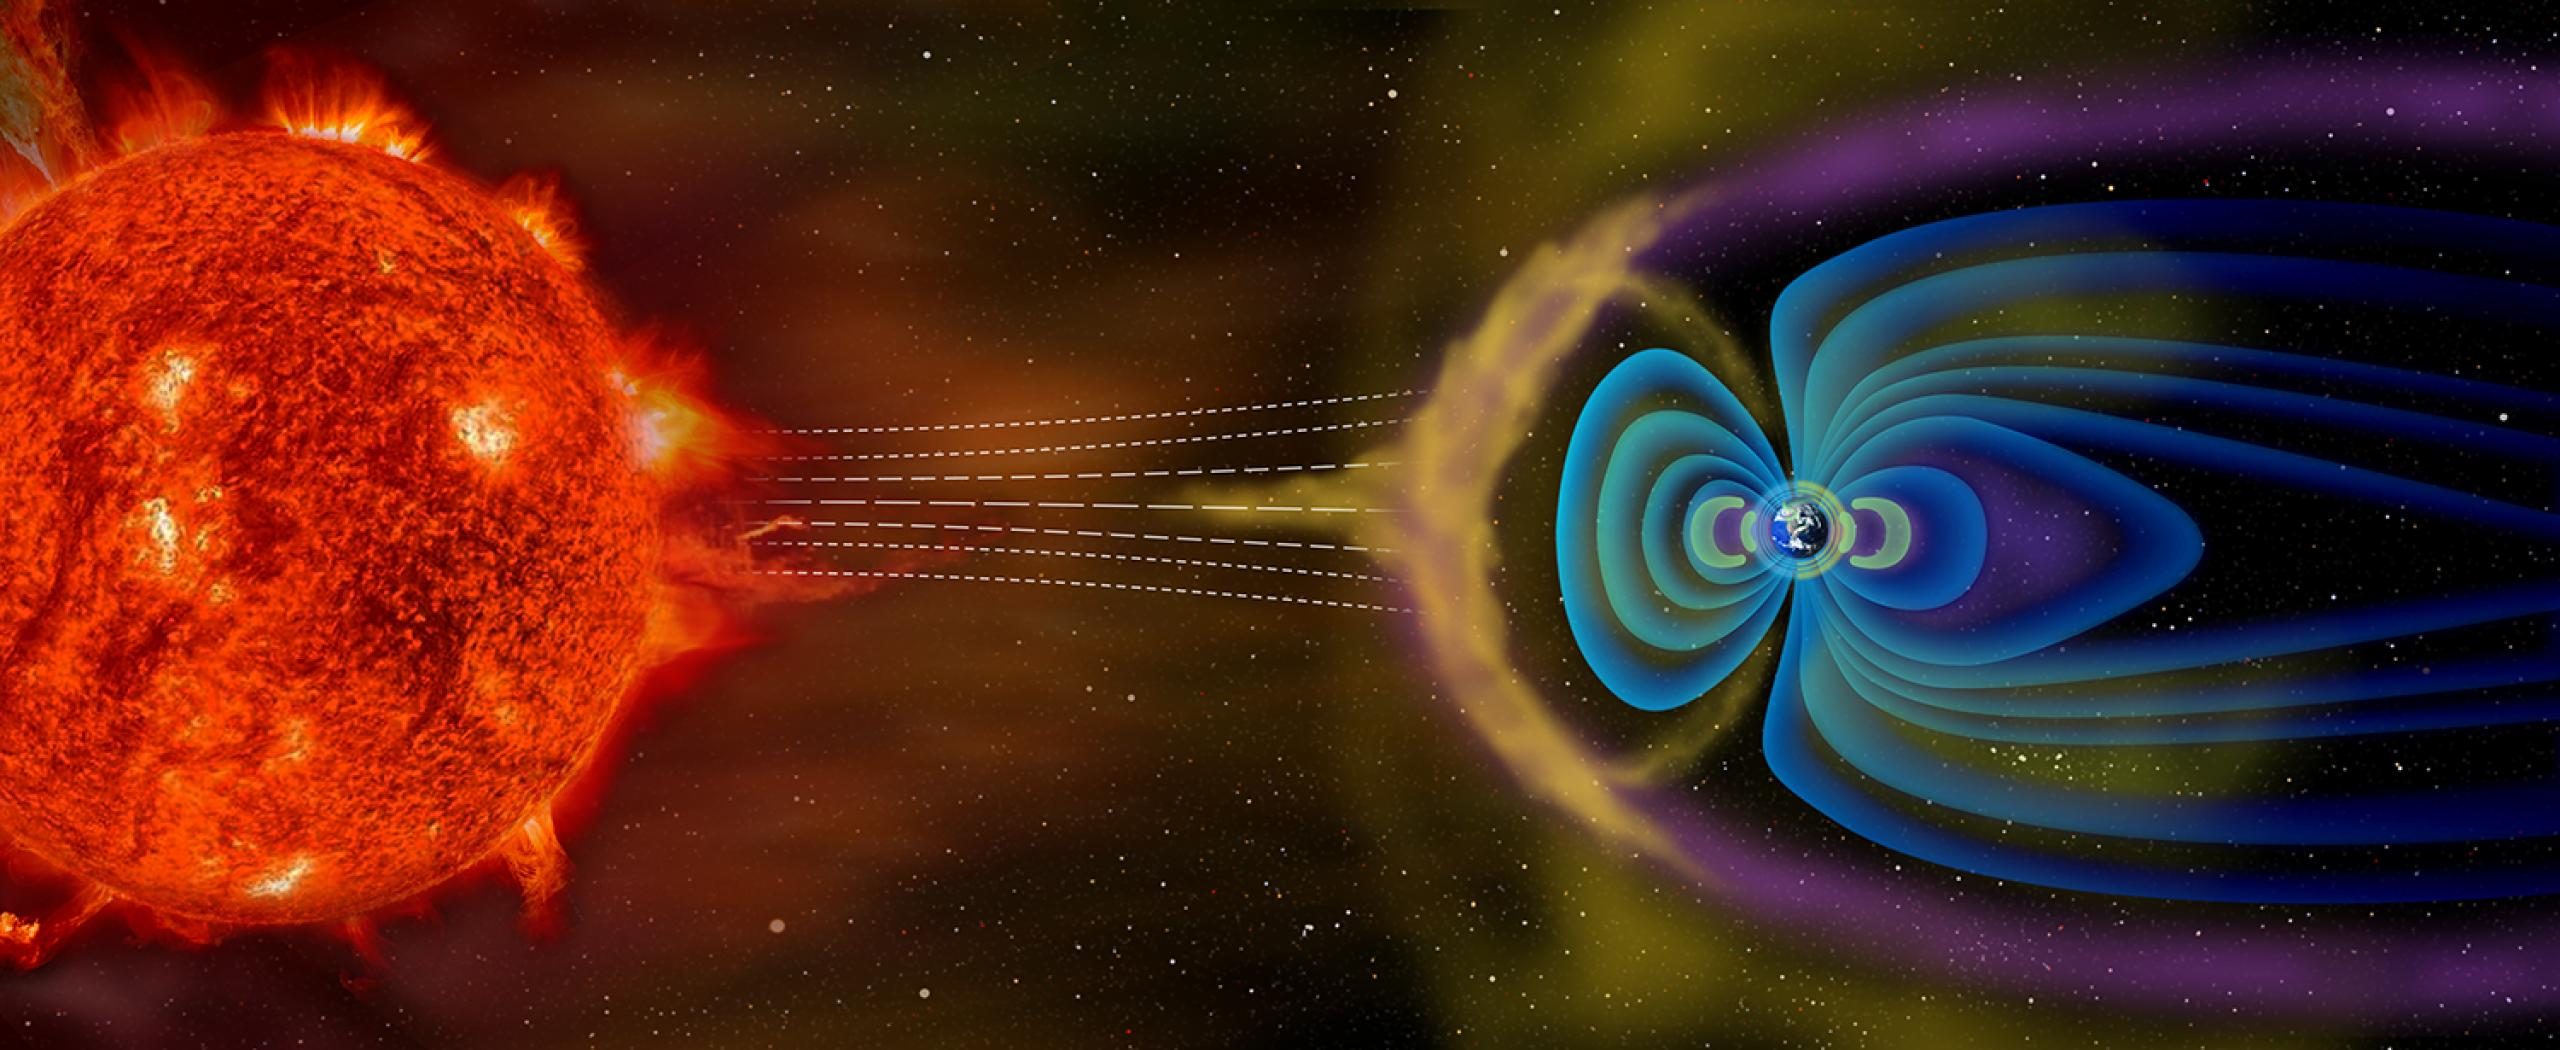 Sun and magnetosphere